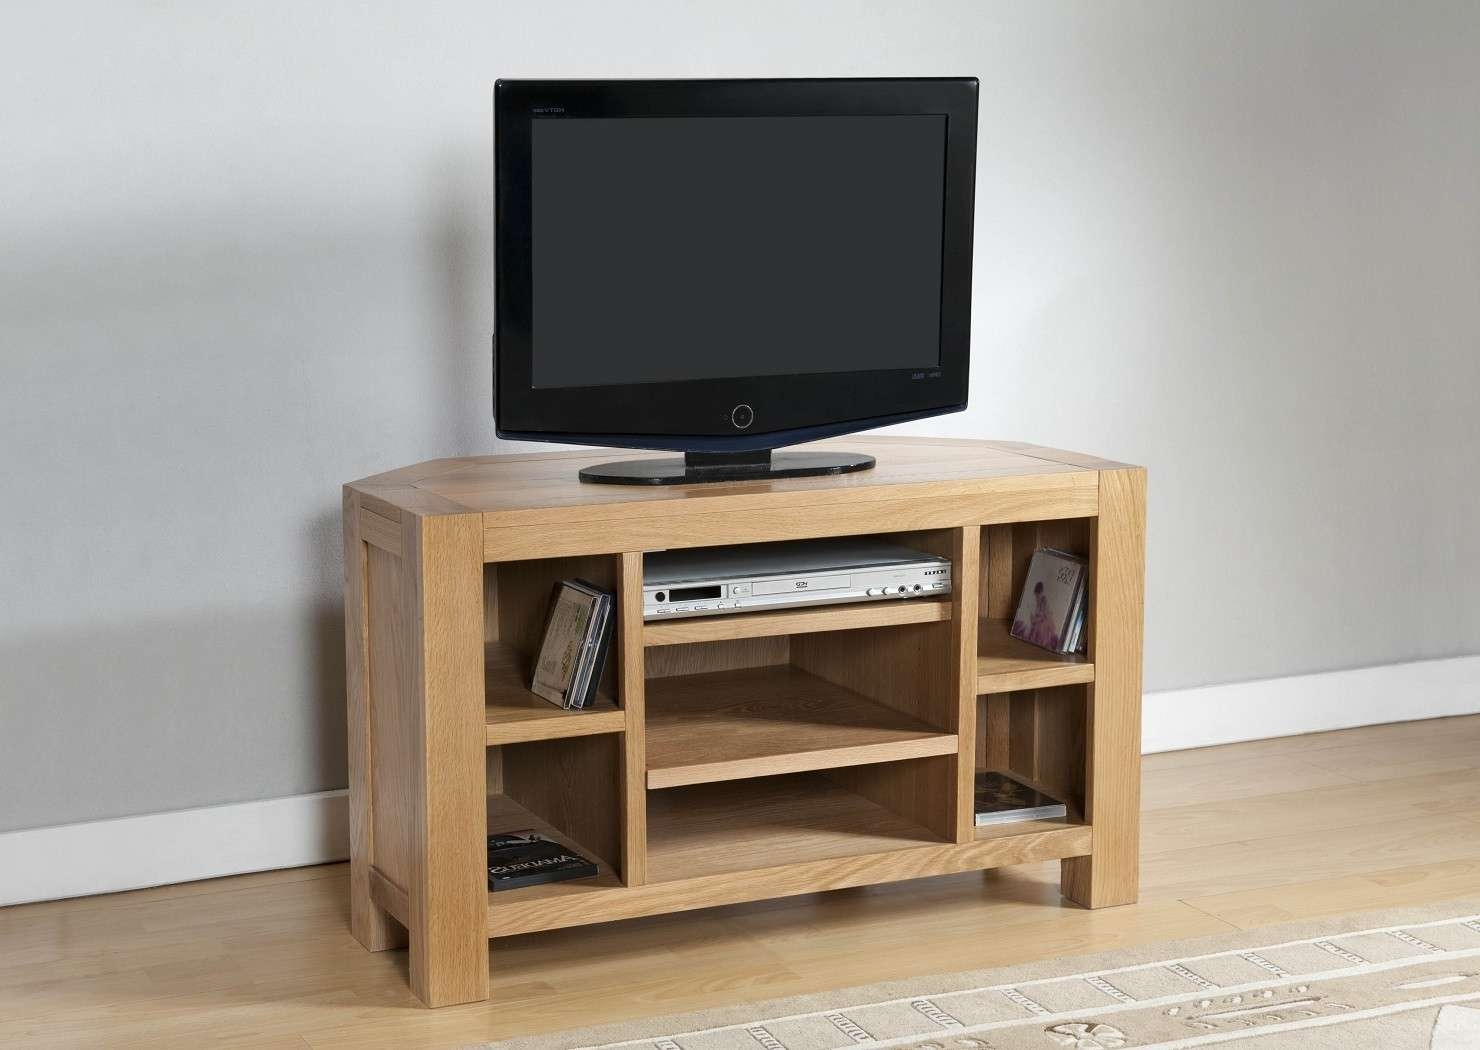 Aylesbury Contemporary Light Oak Corner Tv Unit | Oak Furniture Uk With Regard To Light Oak Corner Tv Stands (View 6 of 20)